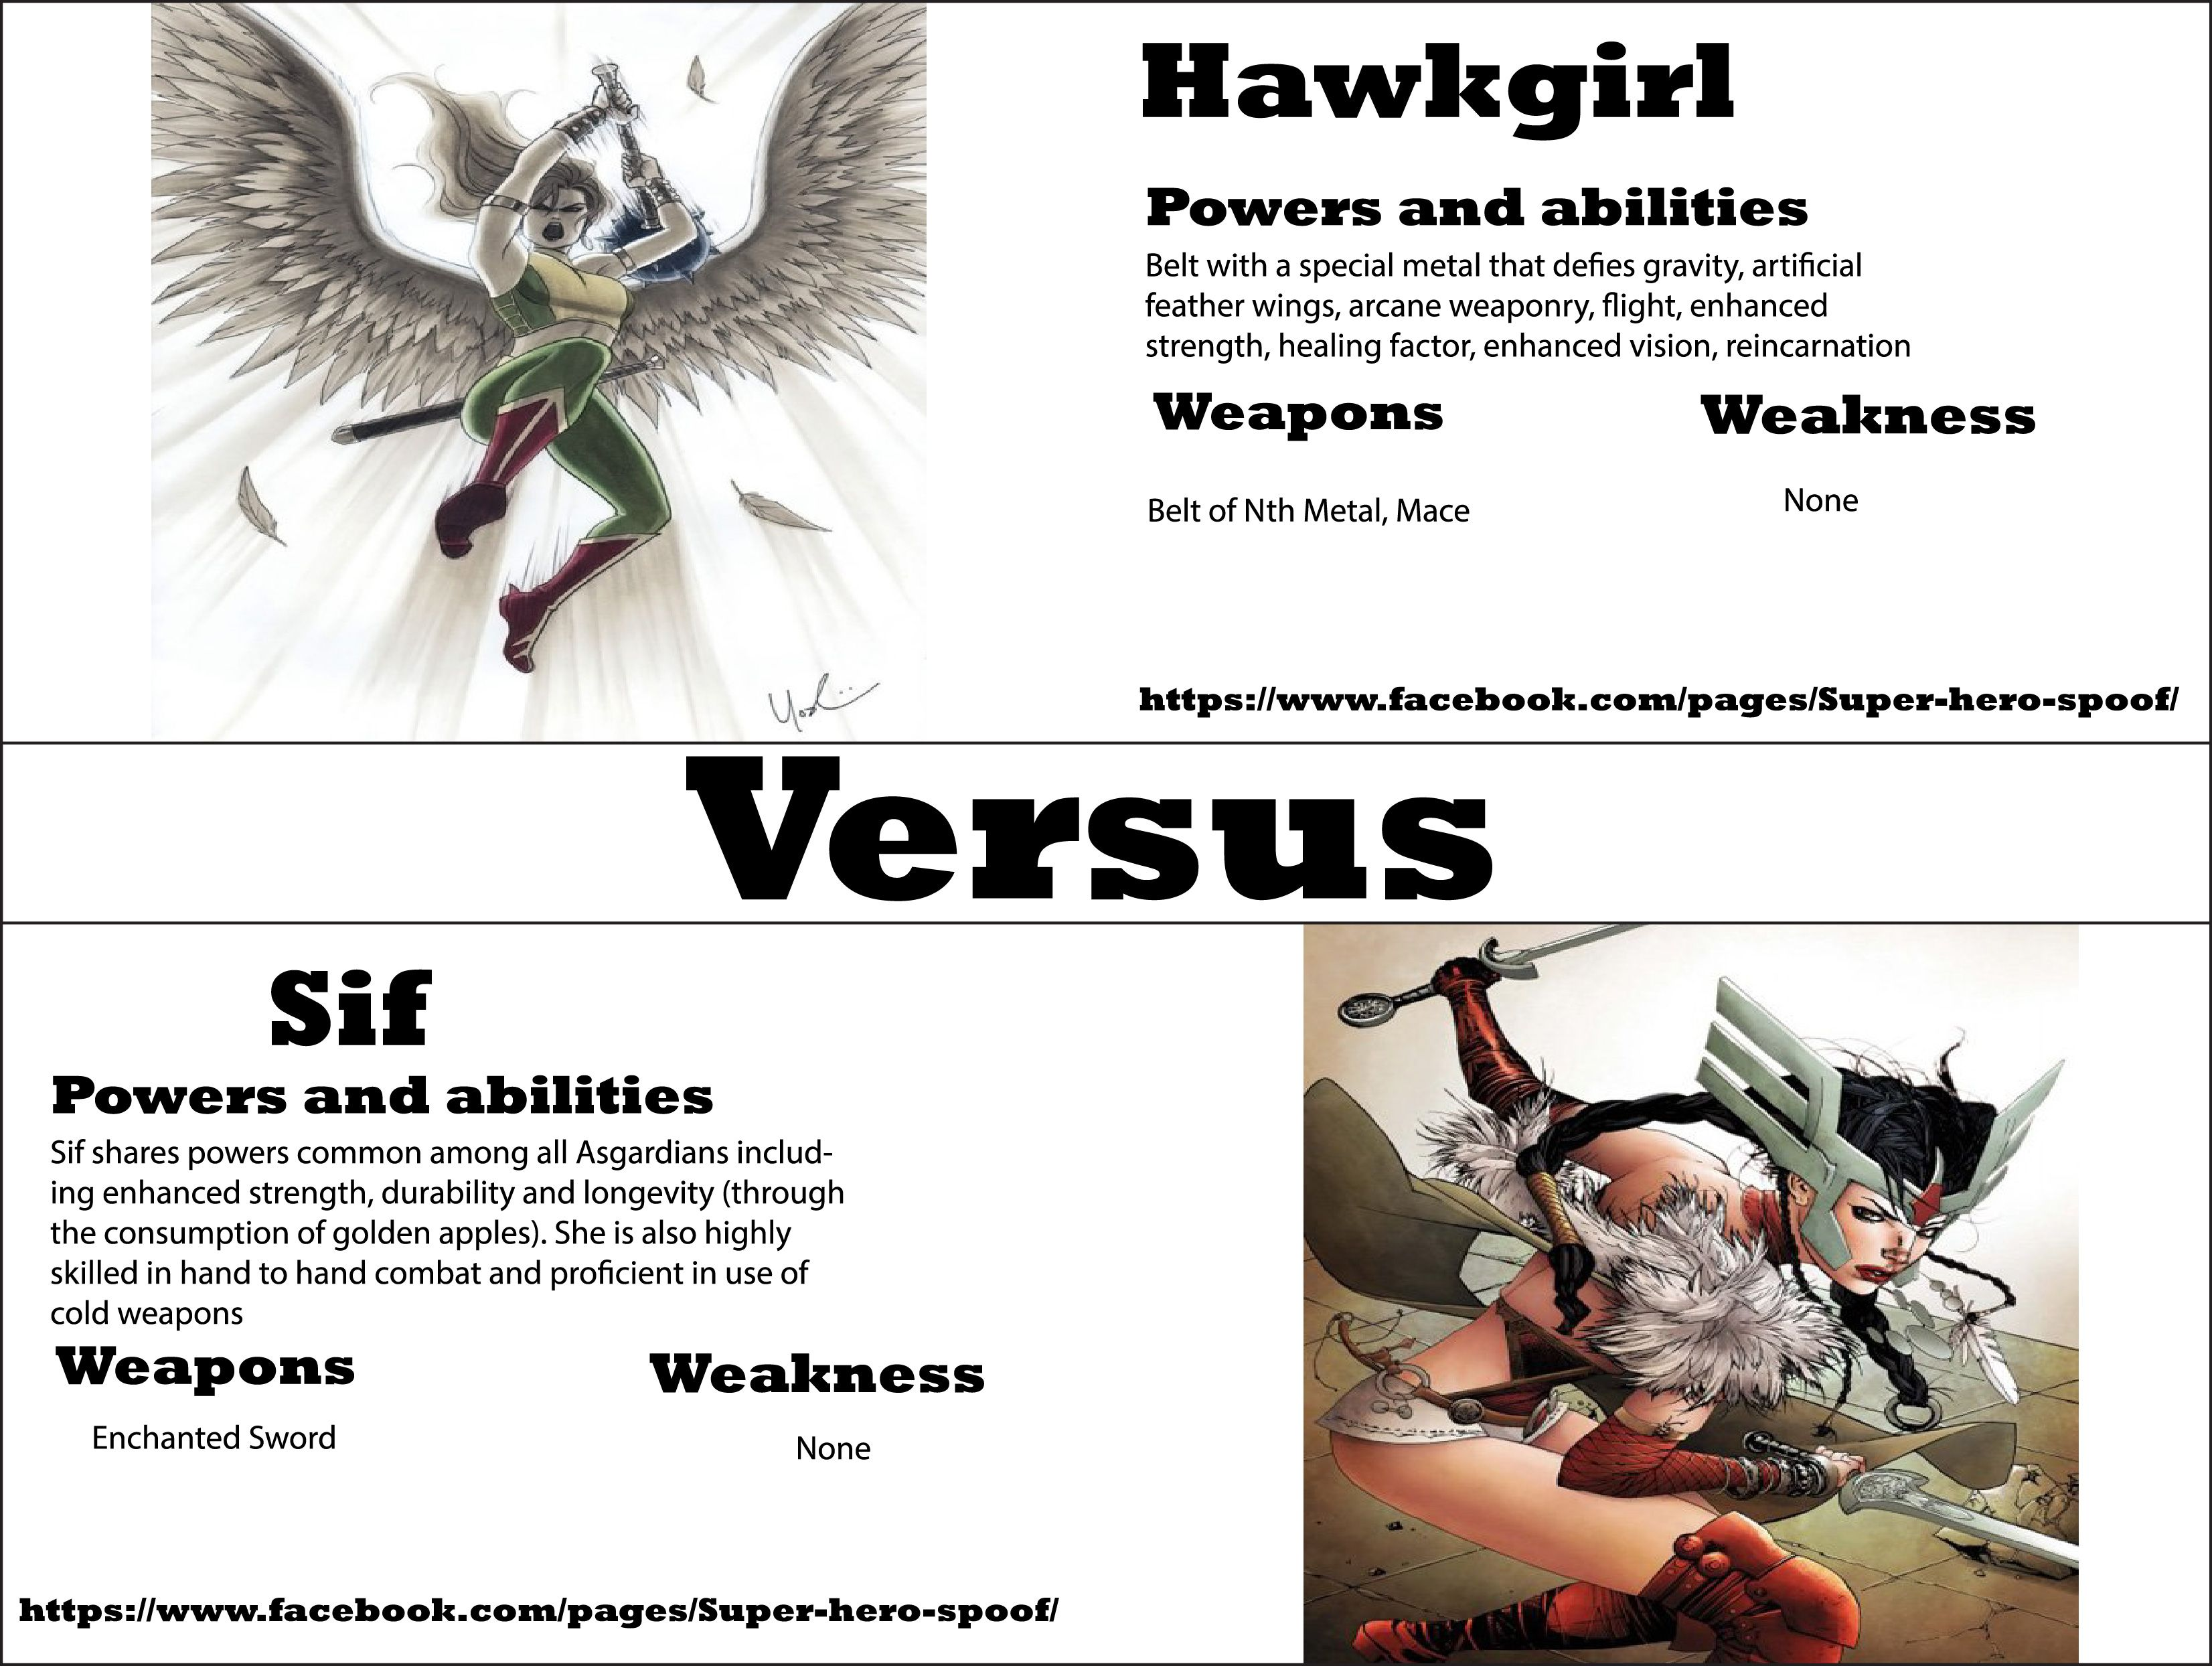 lady sif vs hawk girl who will win and why powers abilities lady sif vs hawk girl who will win and why powers abilities weaknesses and weapons are posted by super hero spoof